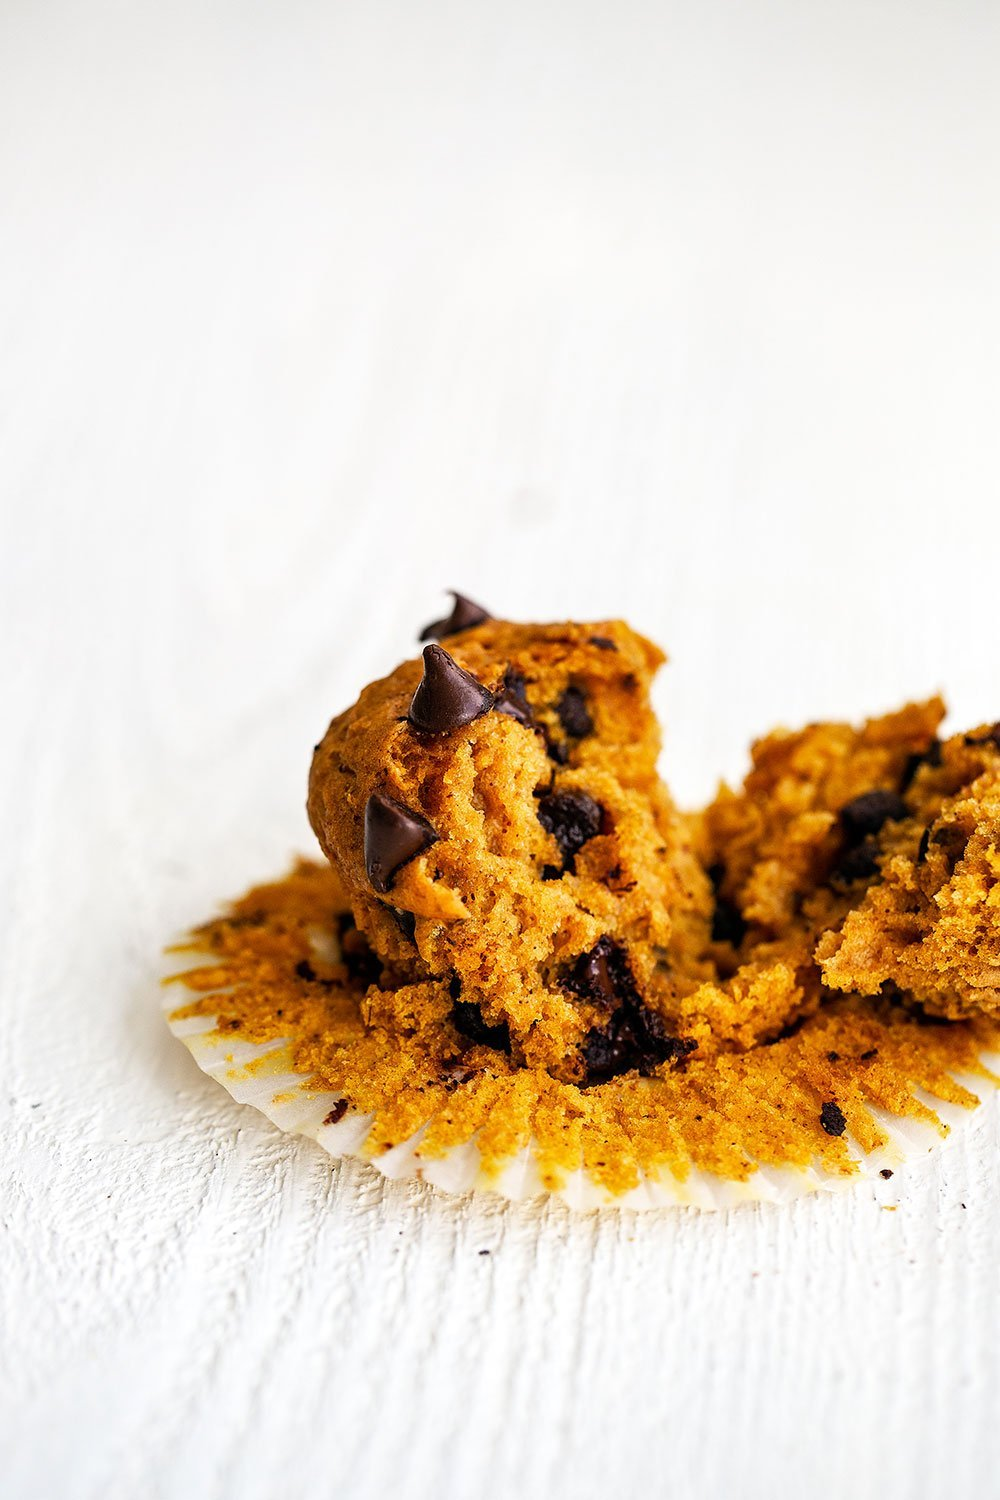 Pumpkin chocolate chip muffin broken apart from eating